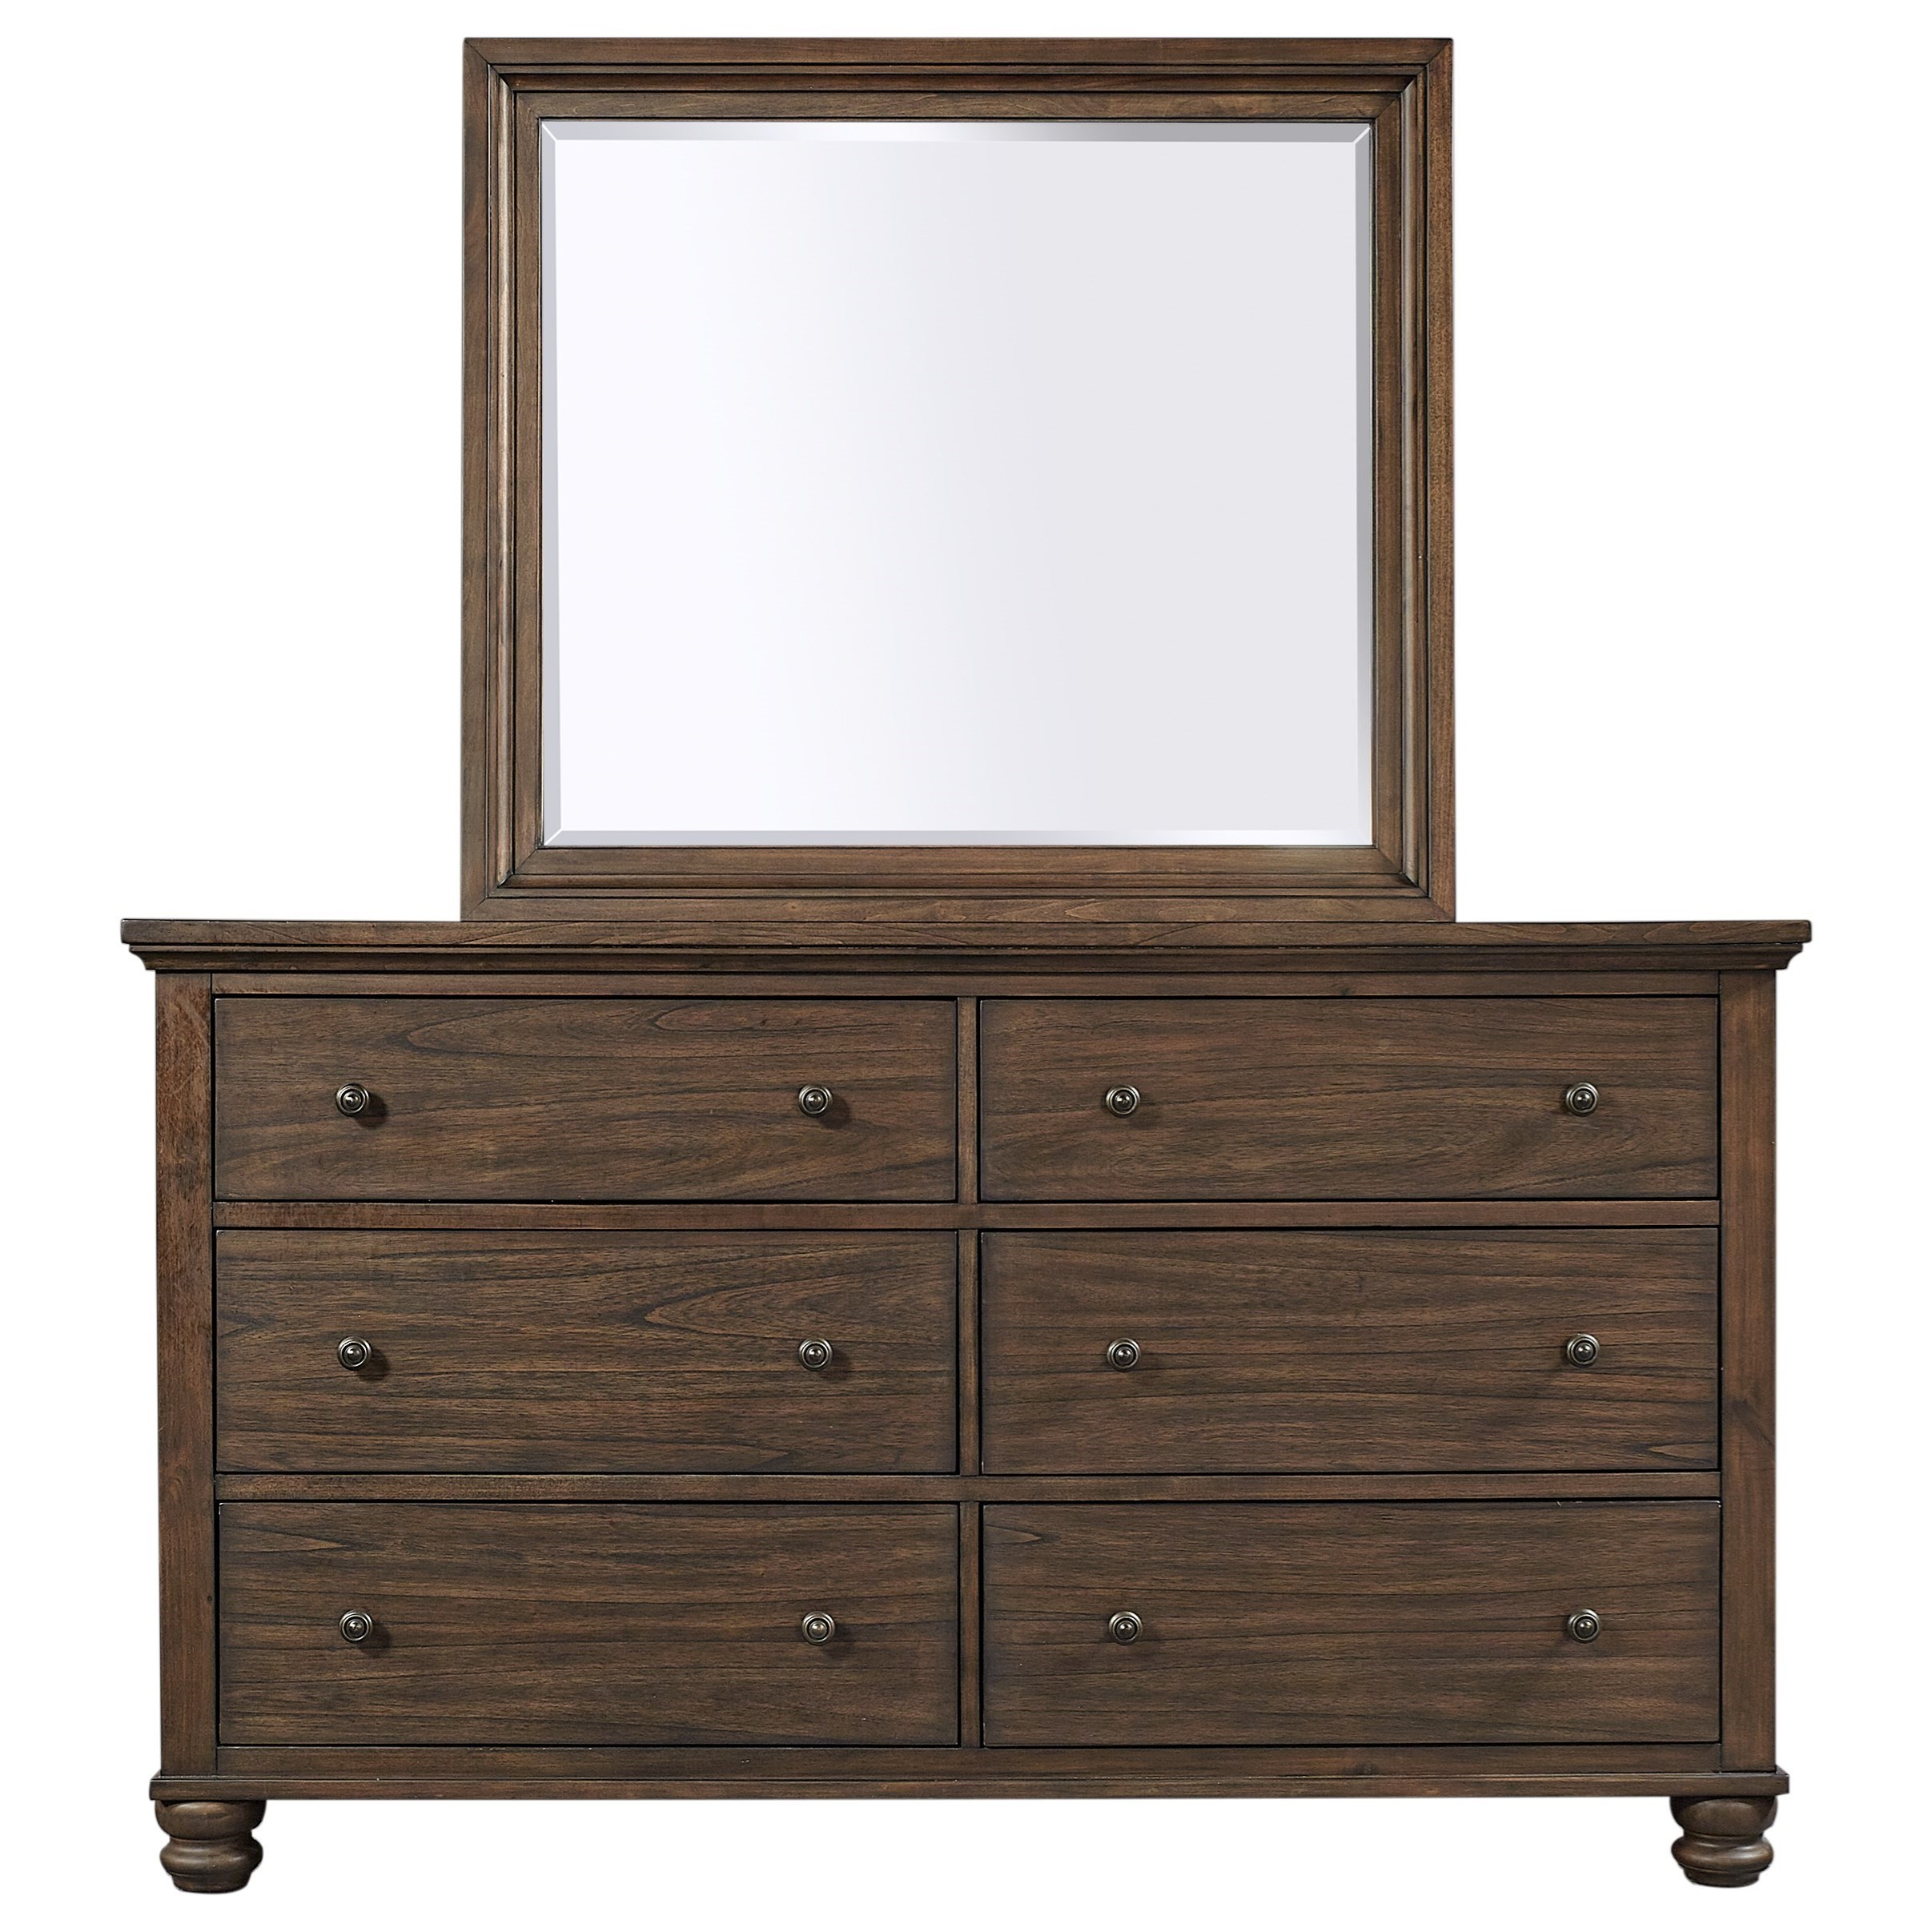 Hudson Valley Dresser and Mirror Combination by Aspenhome at Walker's Furniture